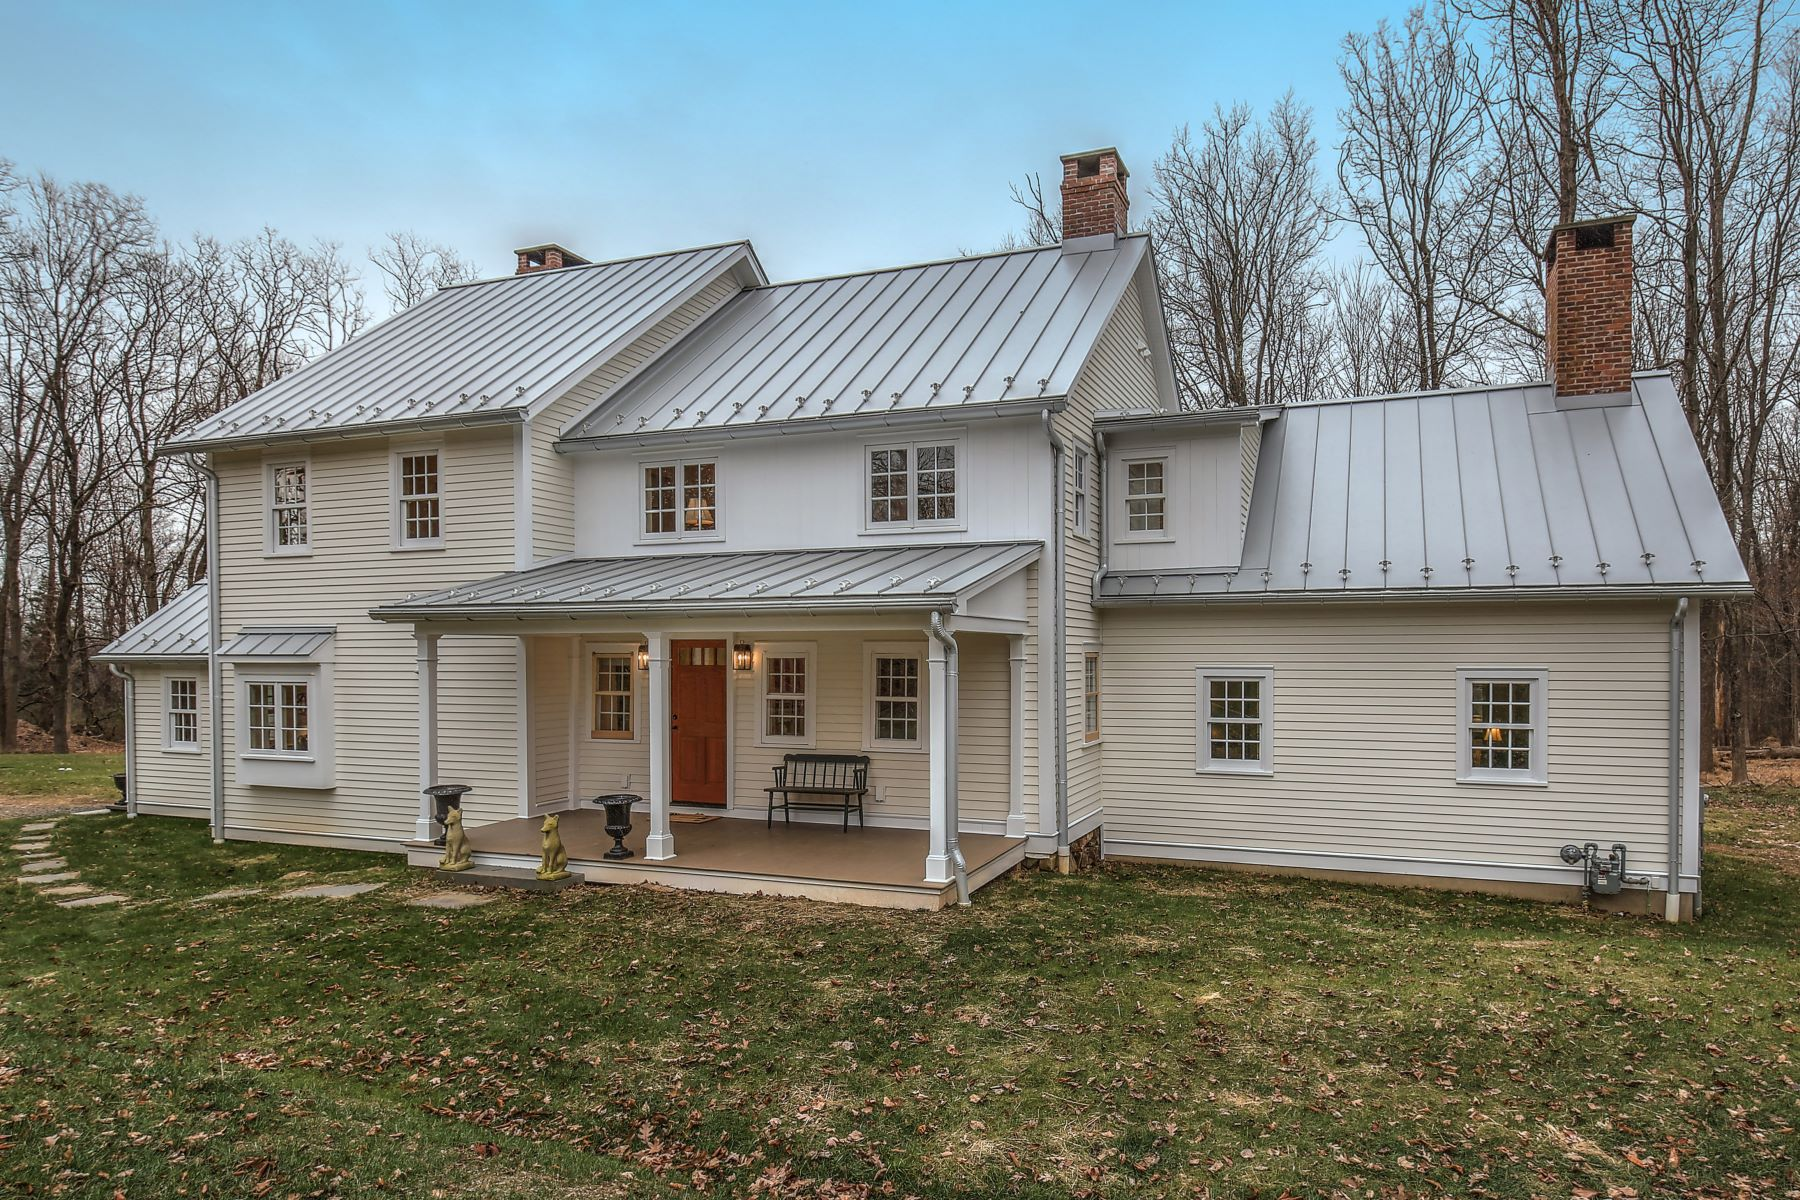 Single Family Home for Sale at Stunningly Renovated 18th Century Home 283 Whitenack Road, Basking Ridge, New Jersey 07920 United States